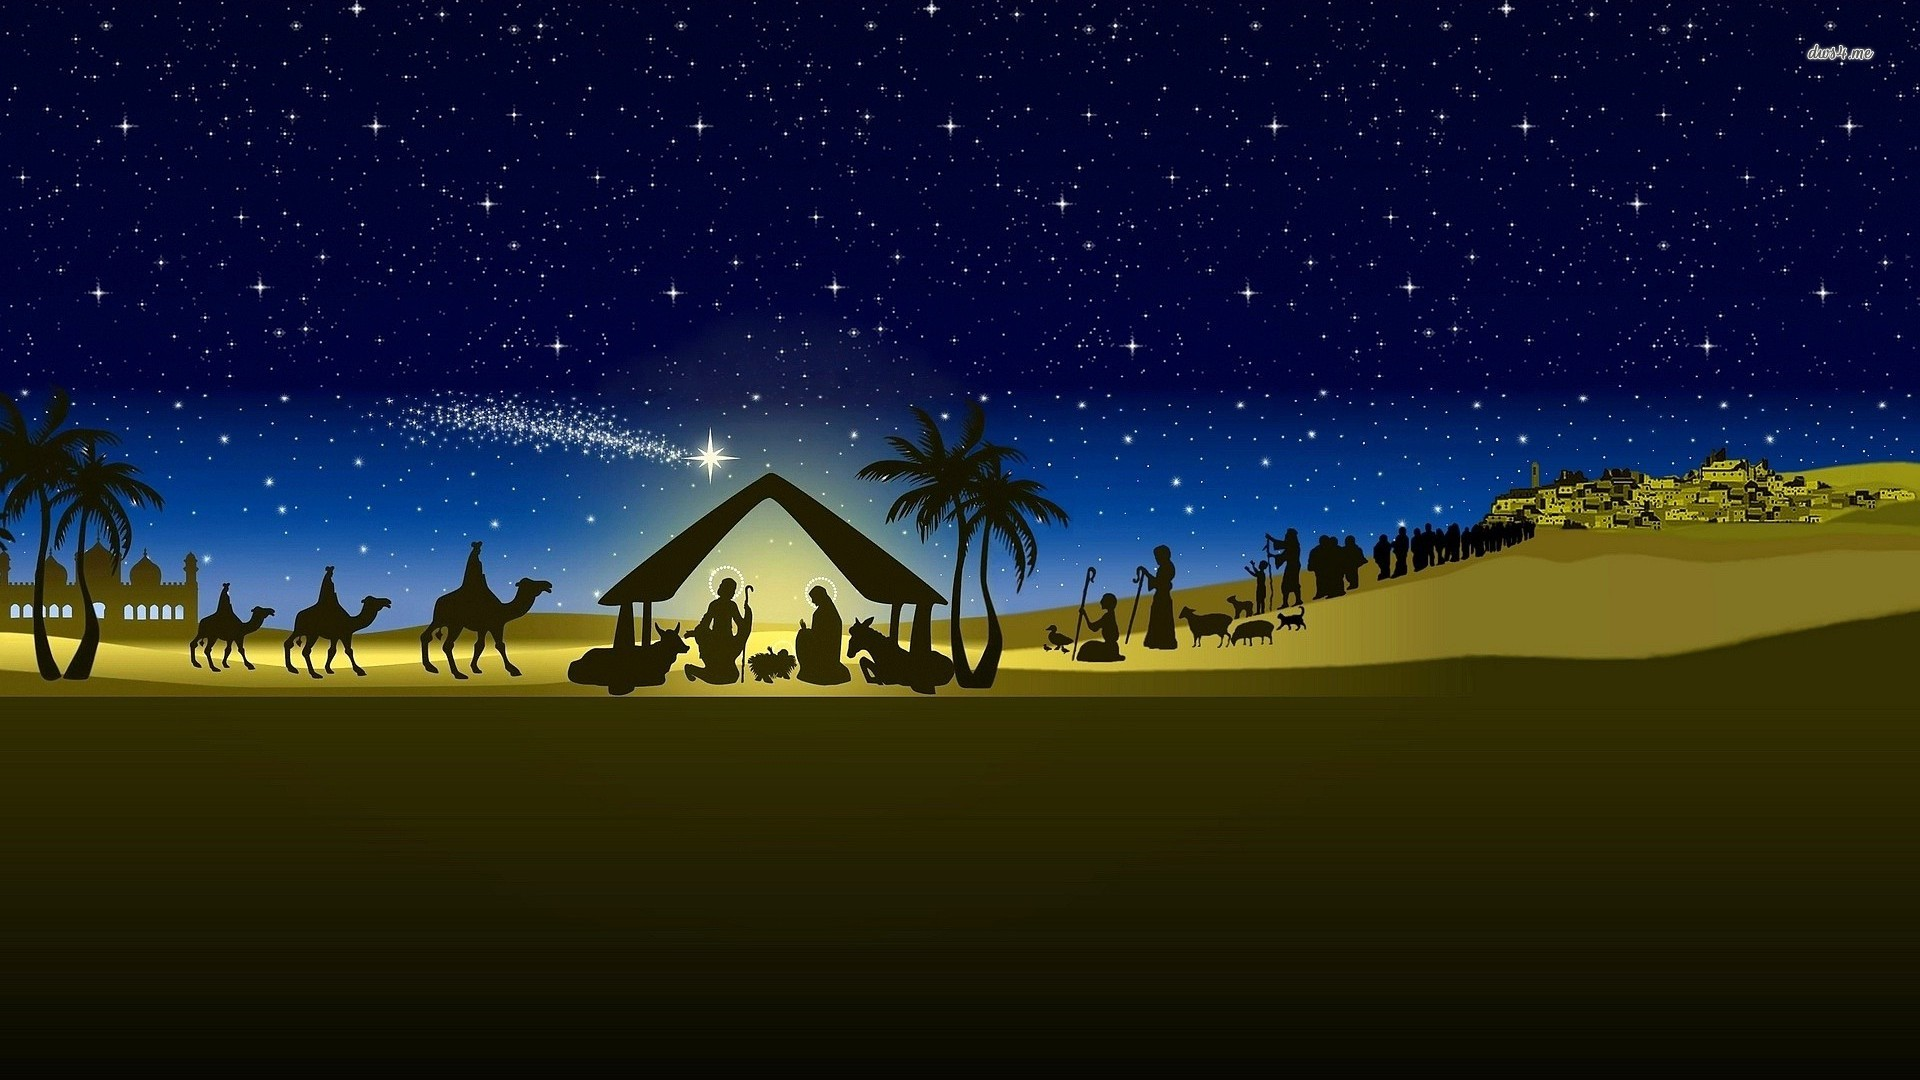 Christmas Crib Images Hd.No Crib For A Bed